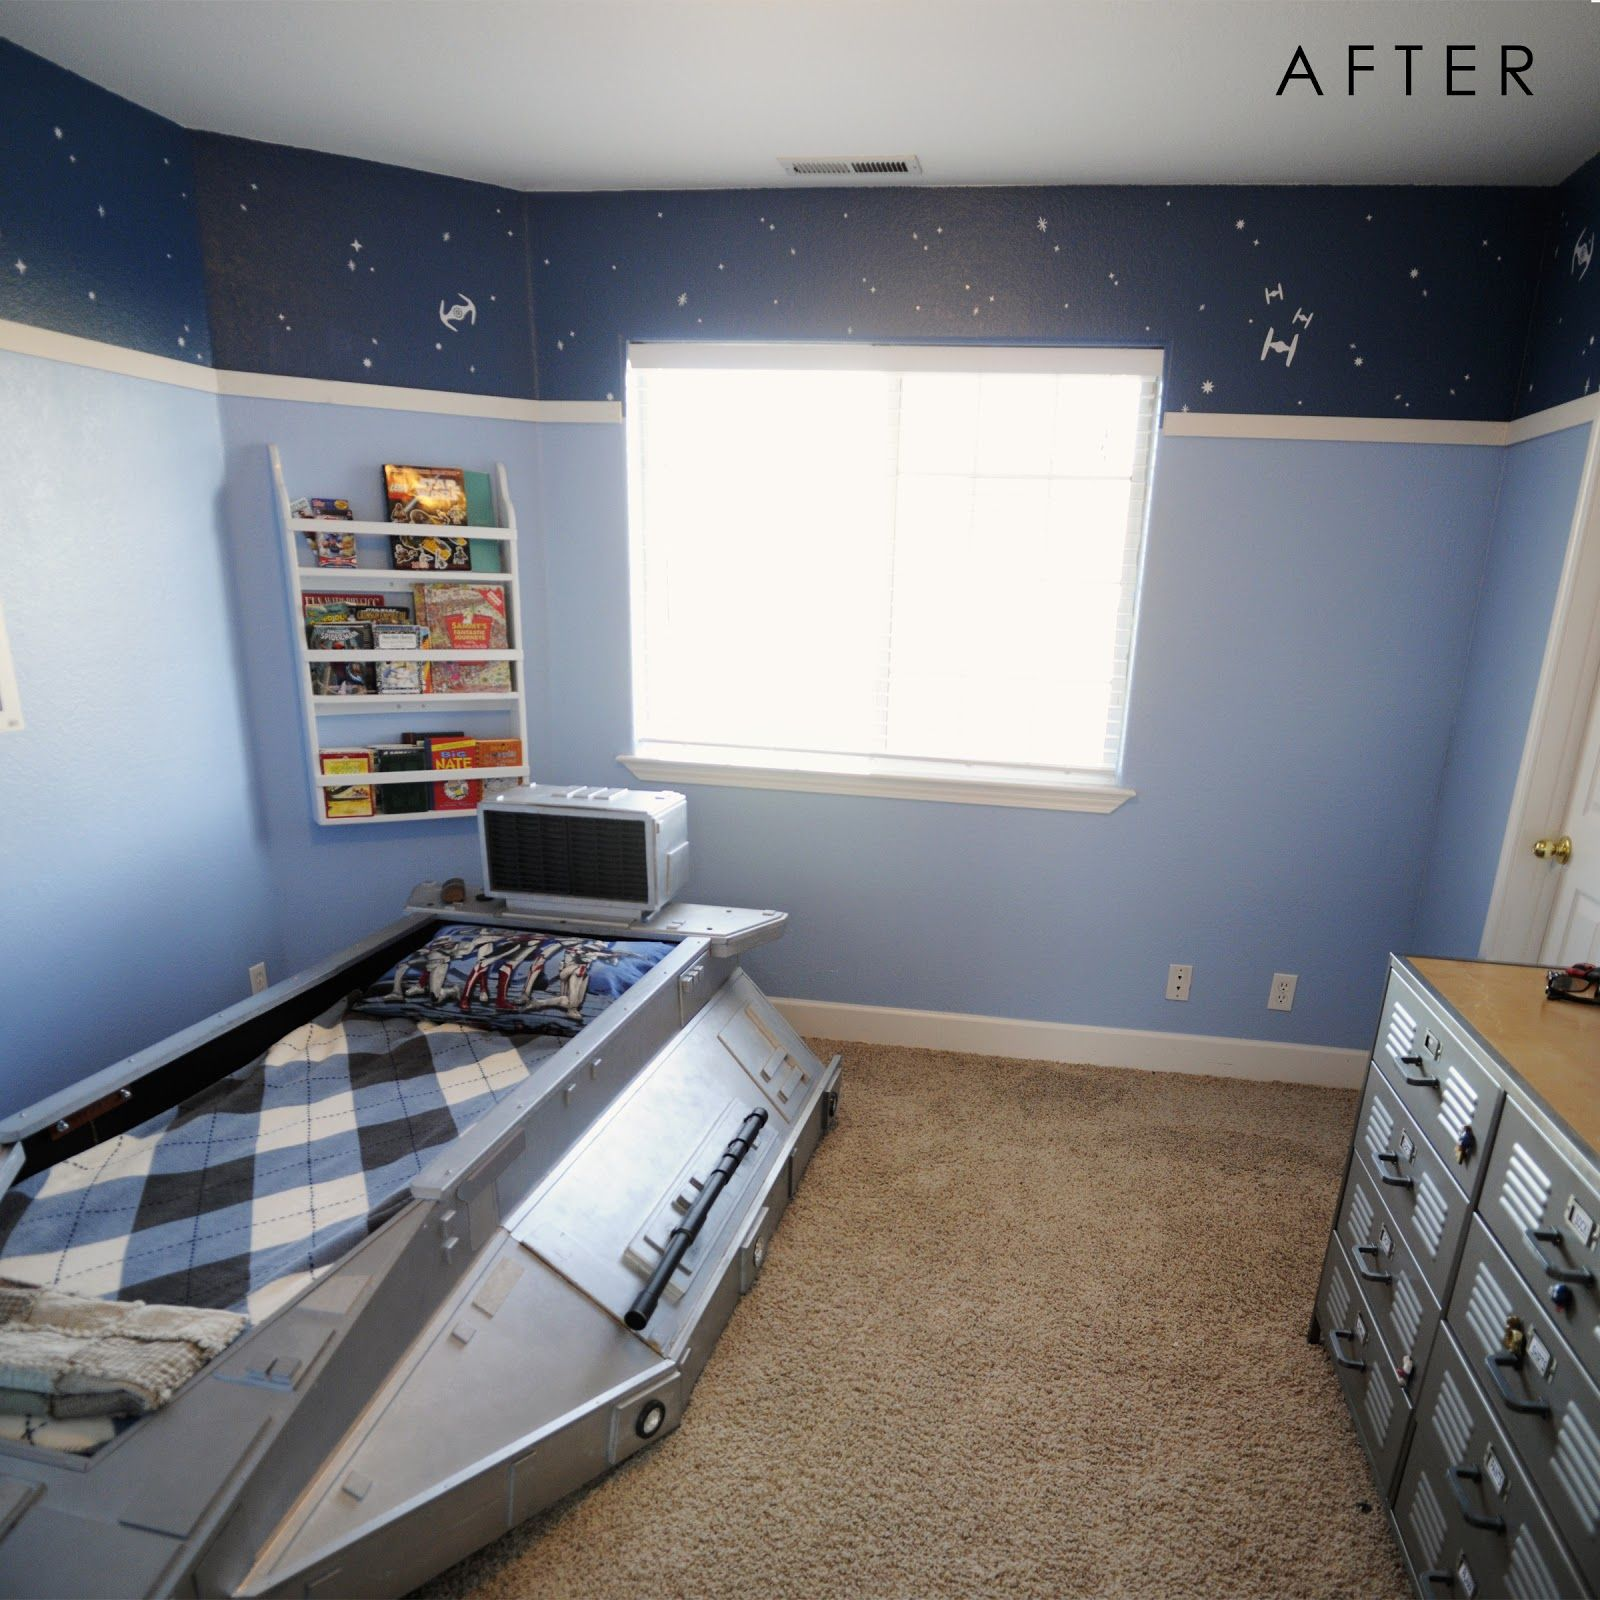 Star Wars Bedroom, Starwars I Like How They Painted The